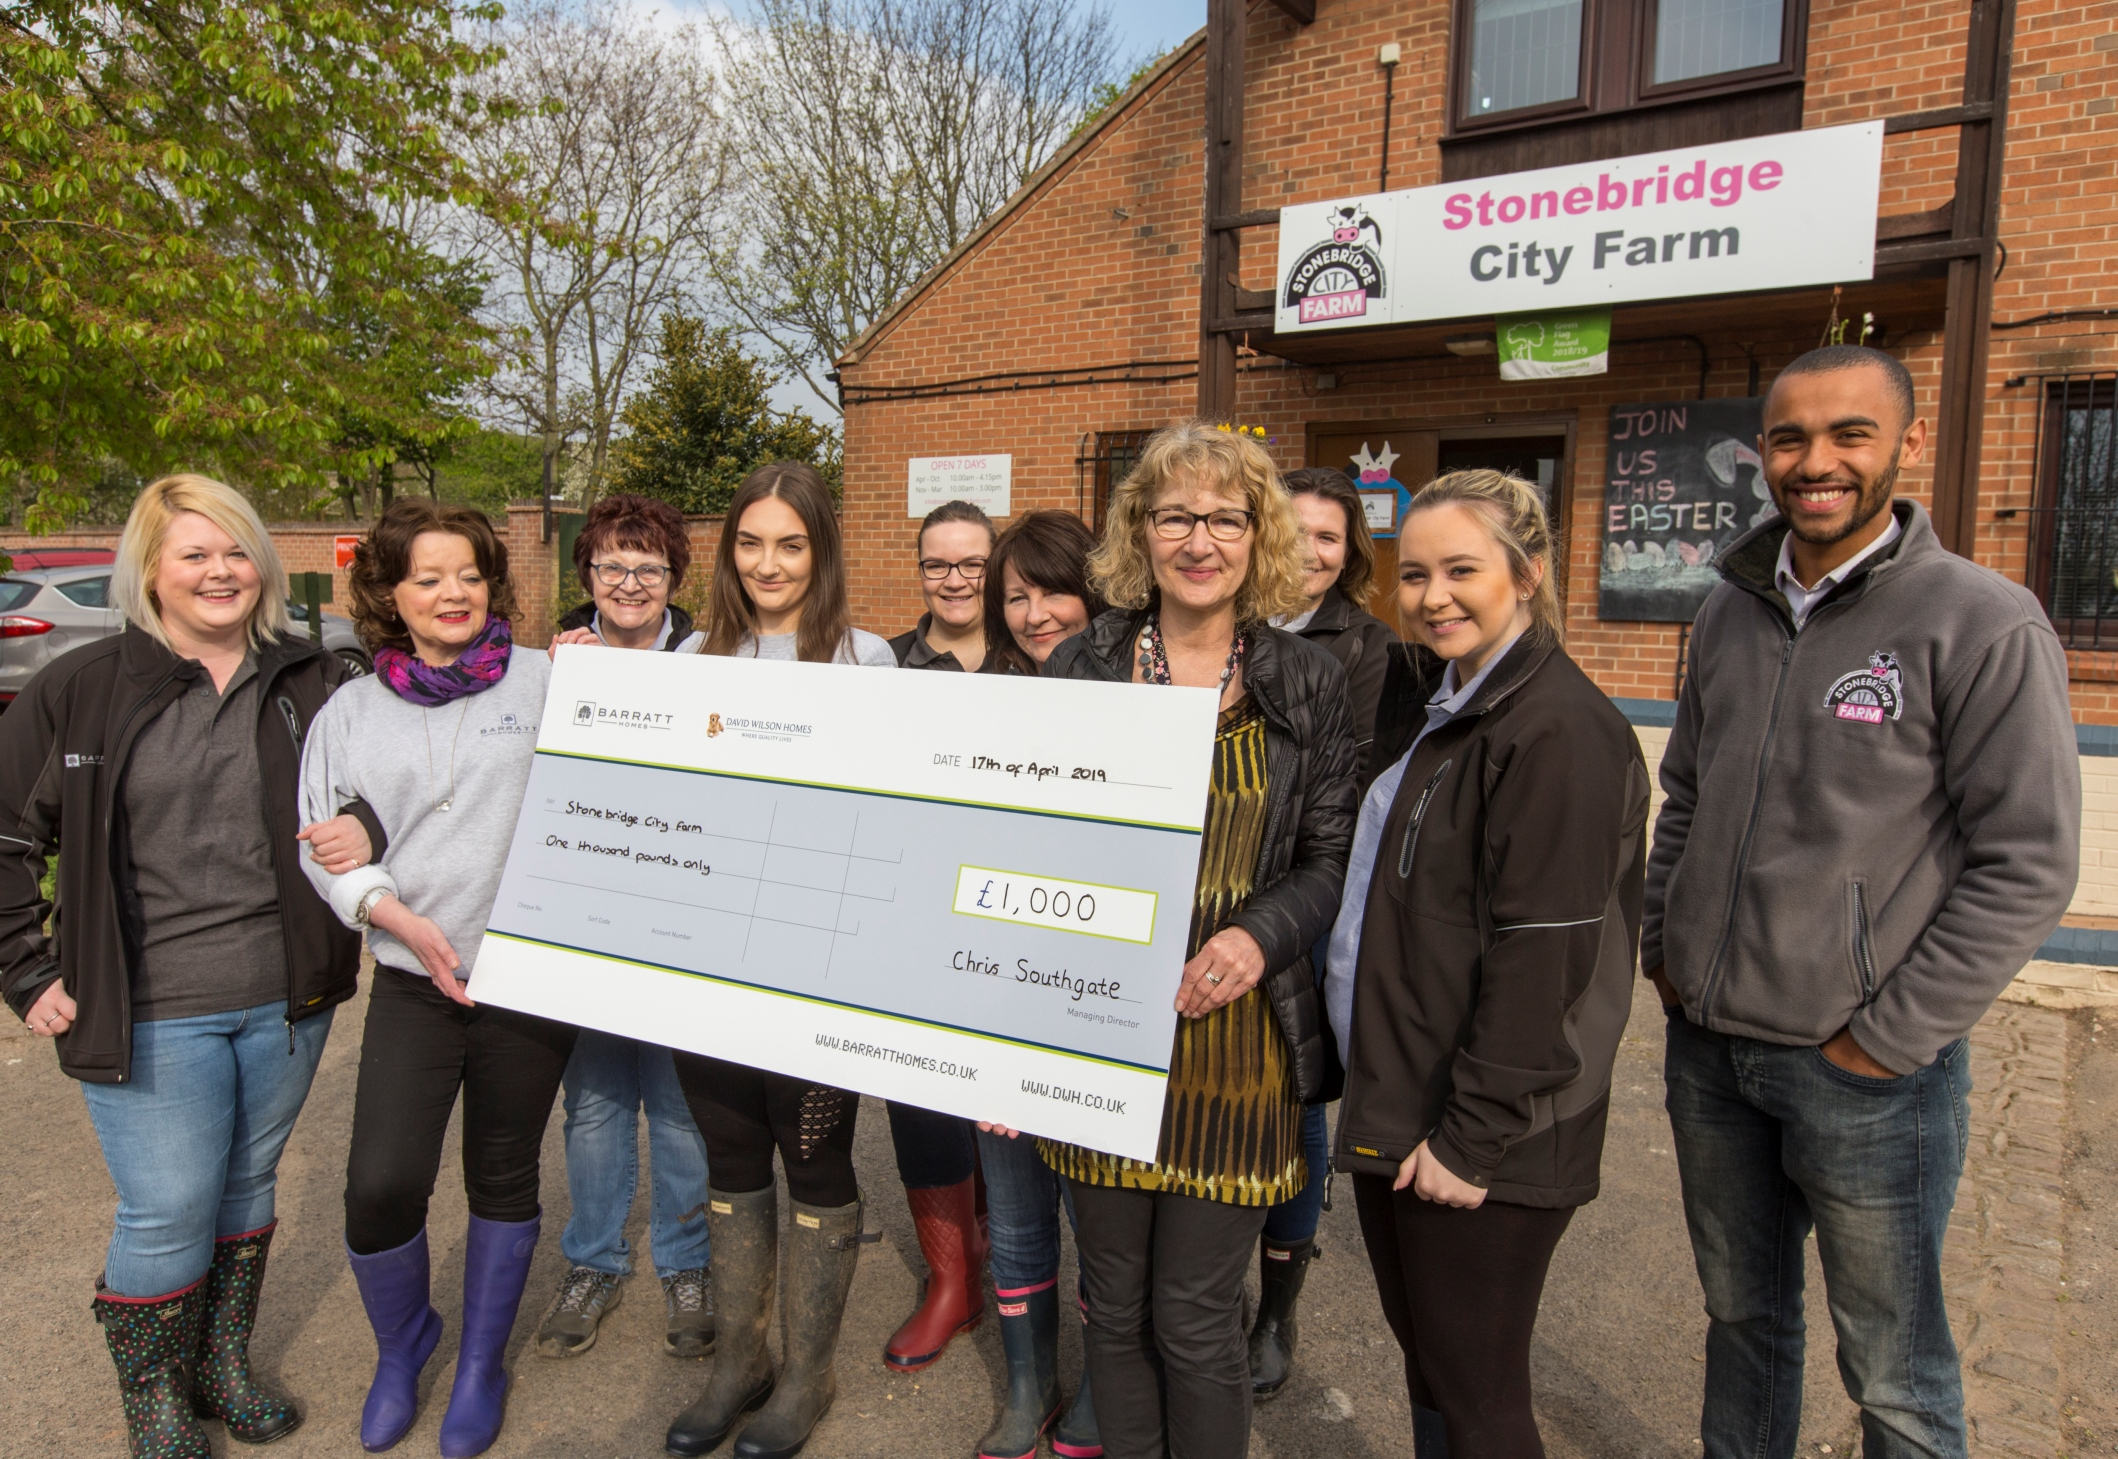 Local housebuilder brings physical and financial support to farm in Nottingham